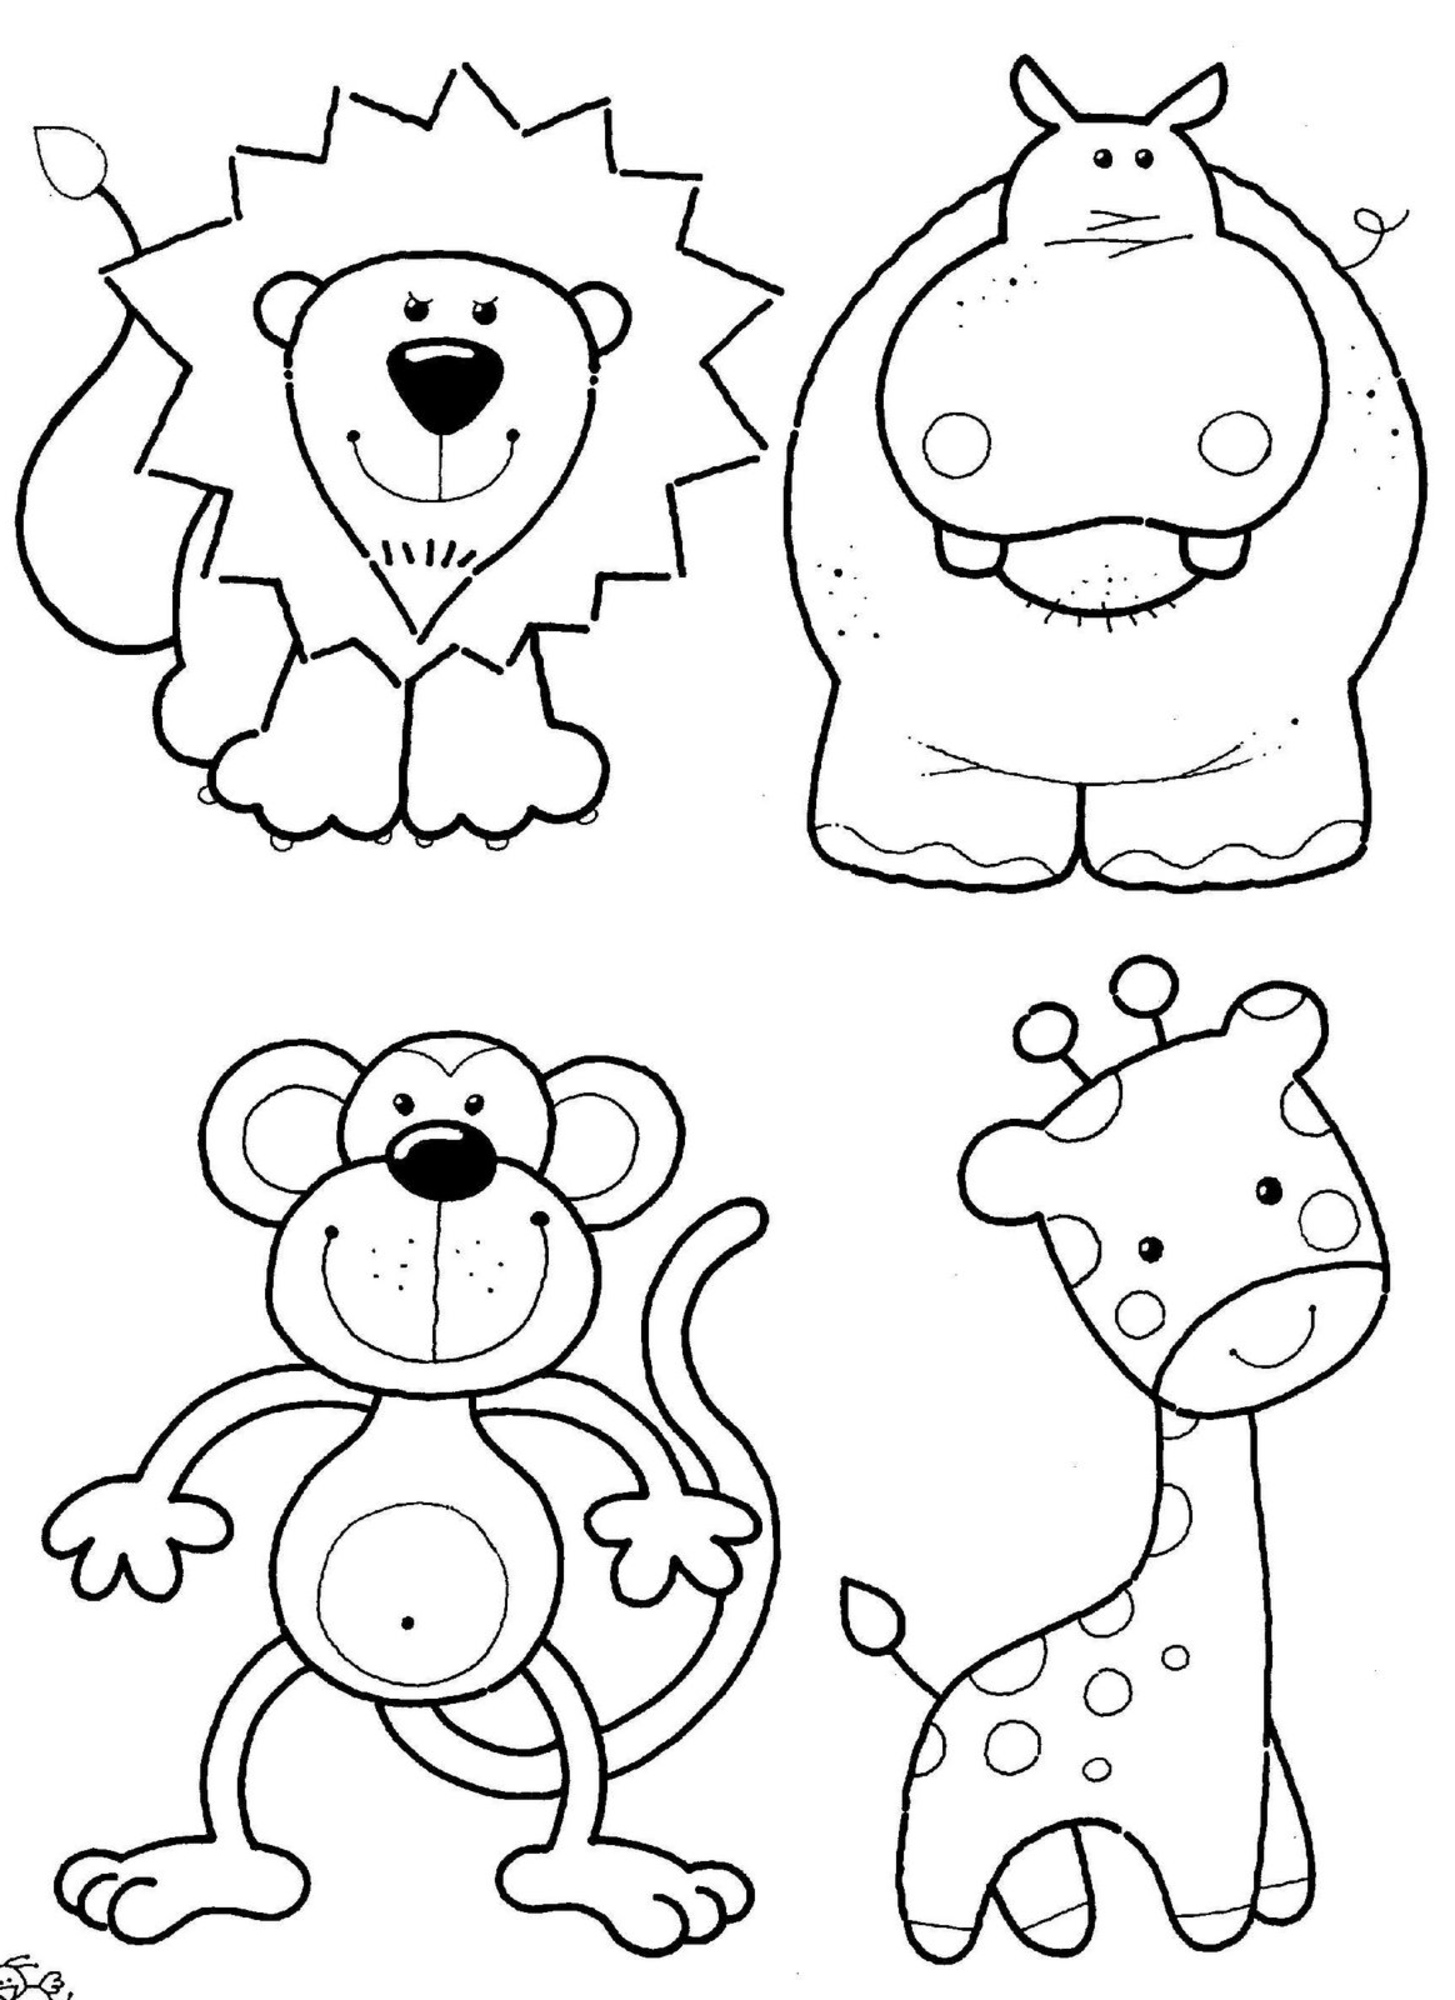 Coloring the animal